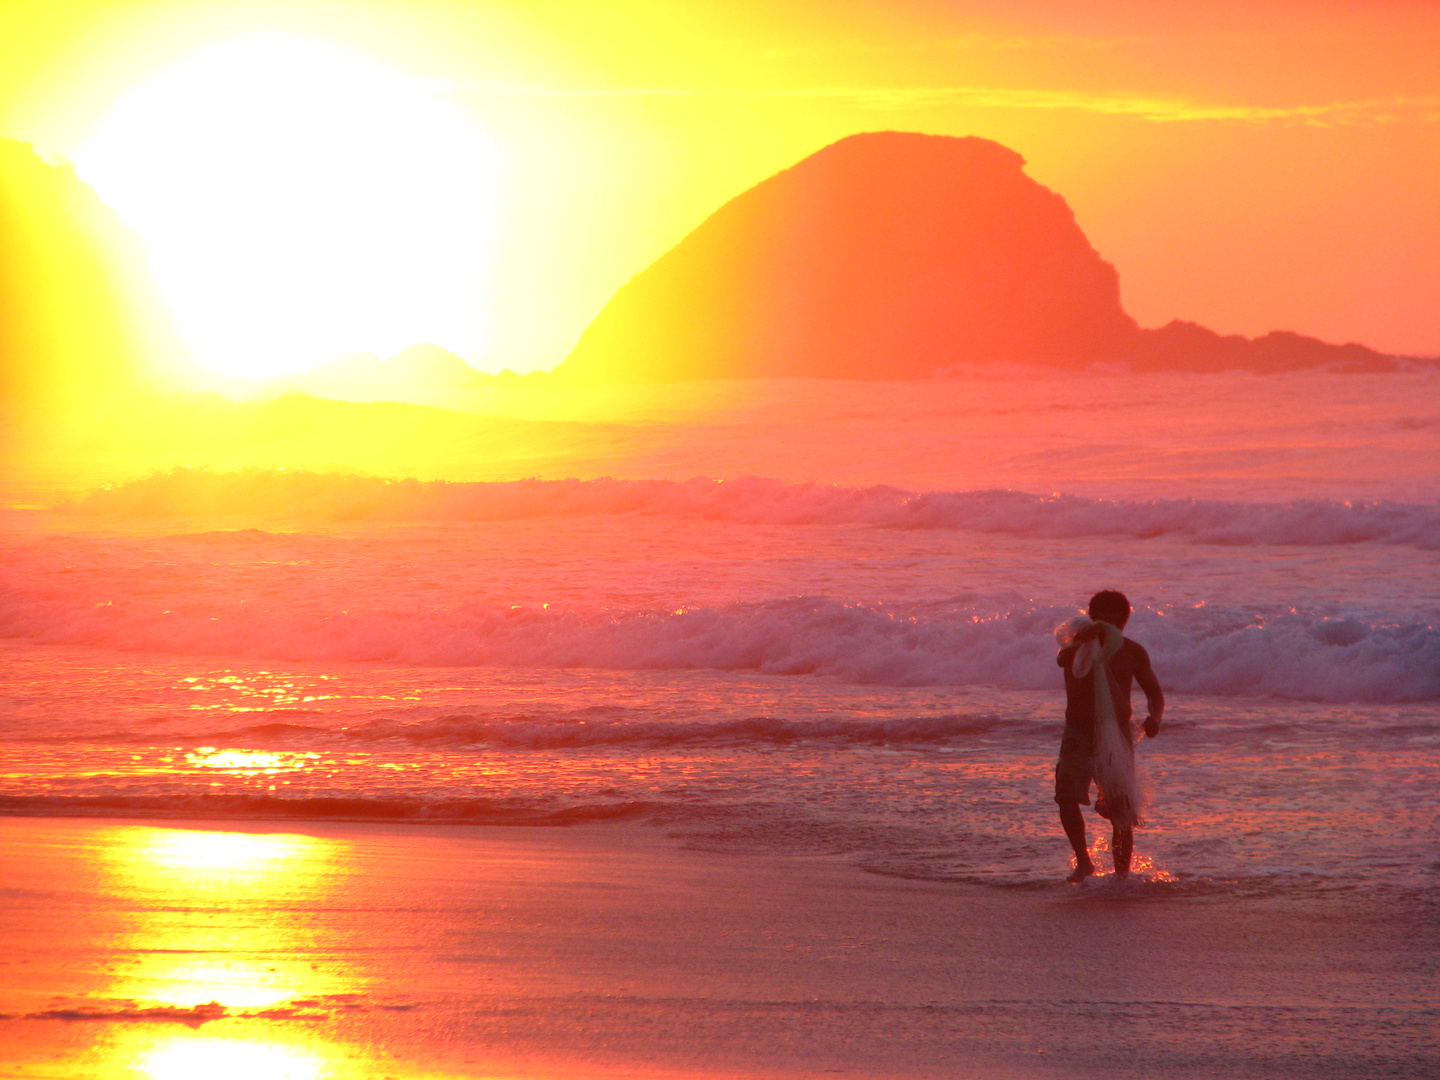 fishermen at work during sunrise at Mexican pacific coast